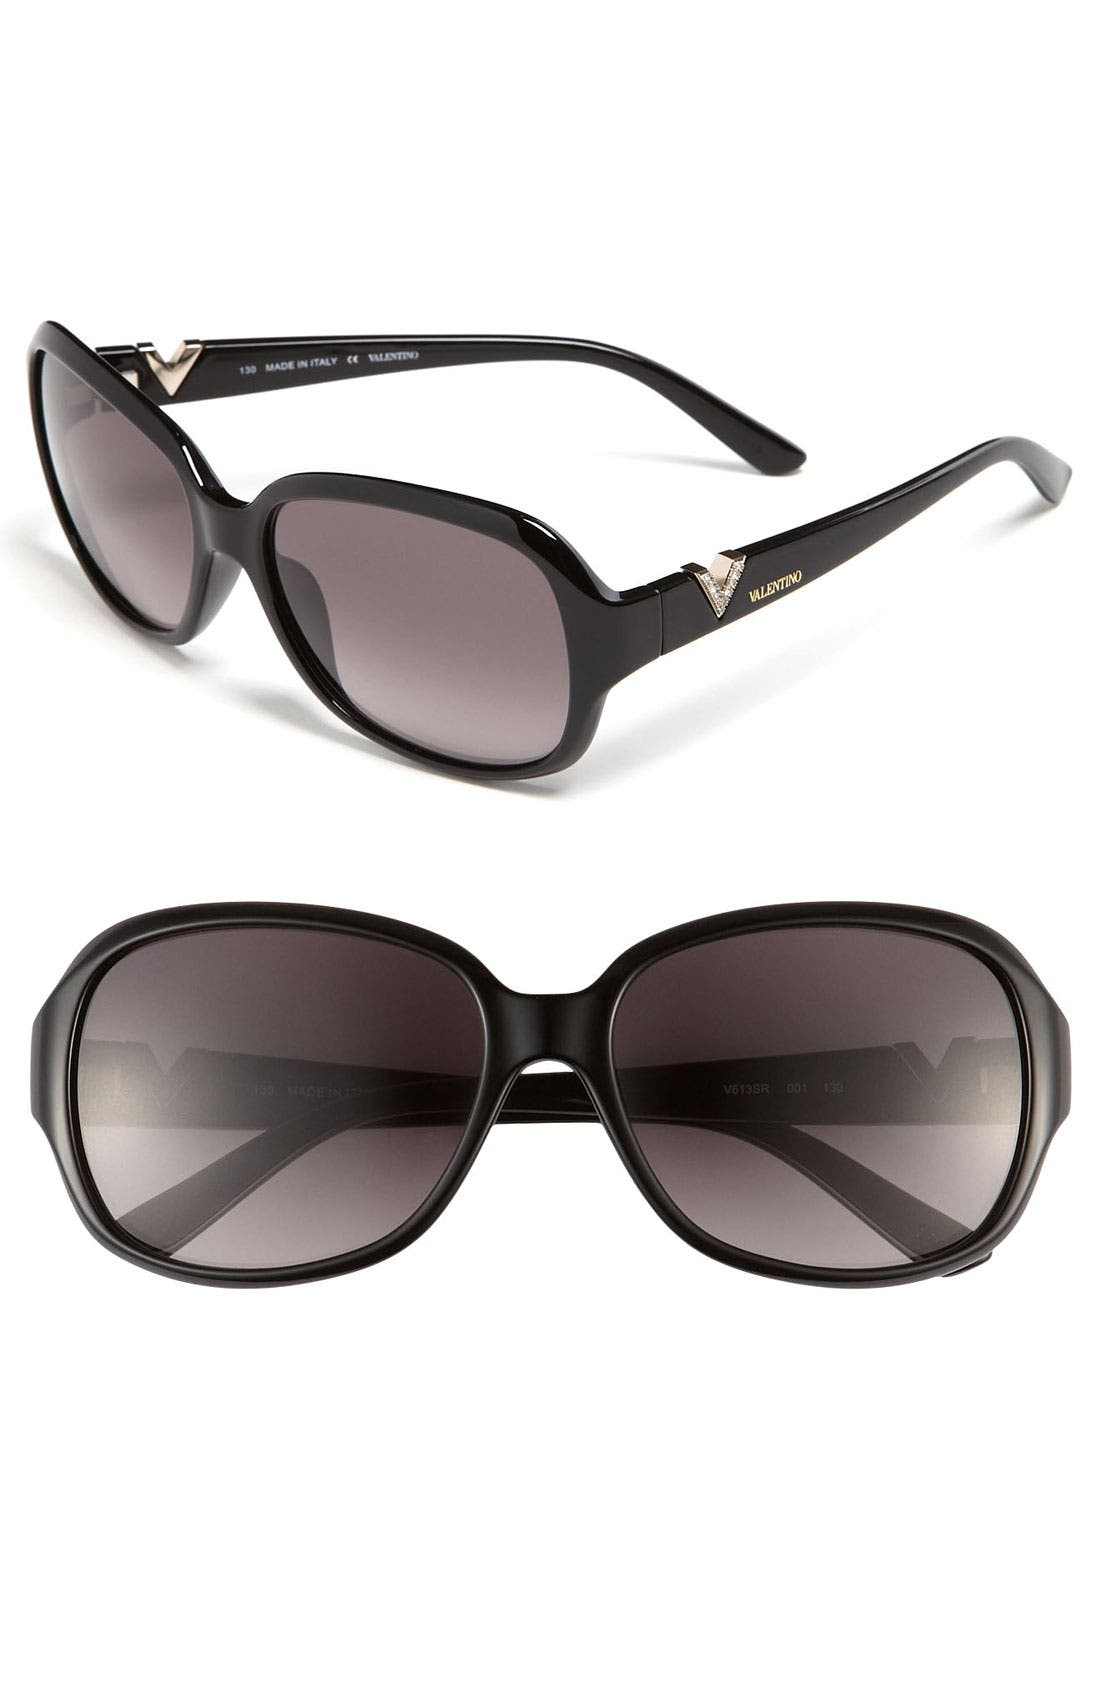 Alternate Image 1 Selected - Valentino 57mm Classic Sunglasses